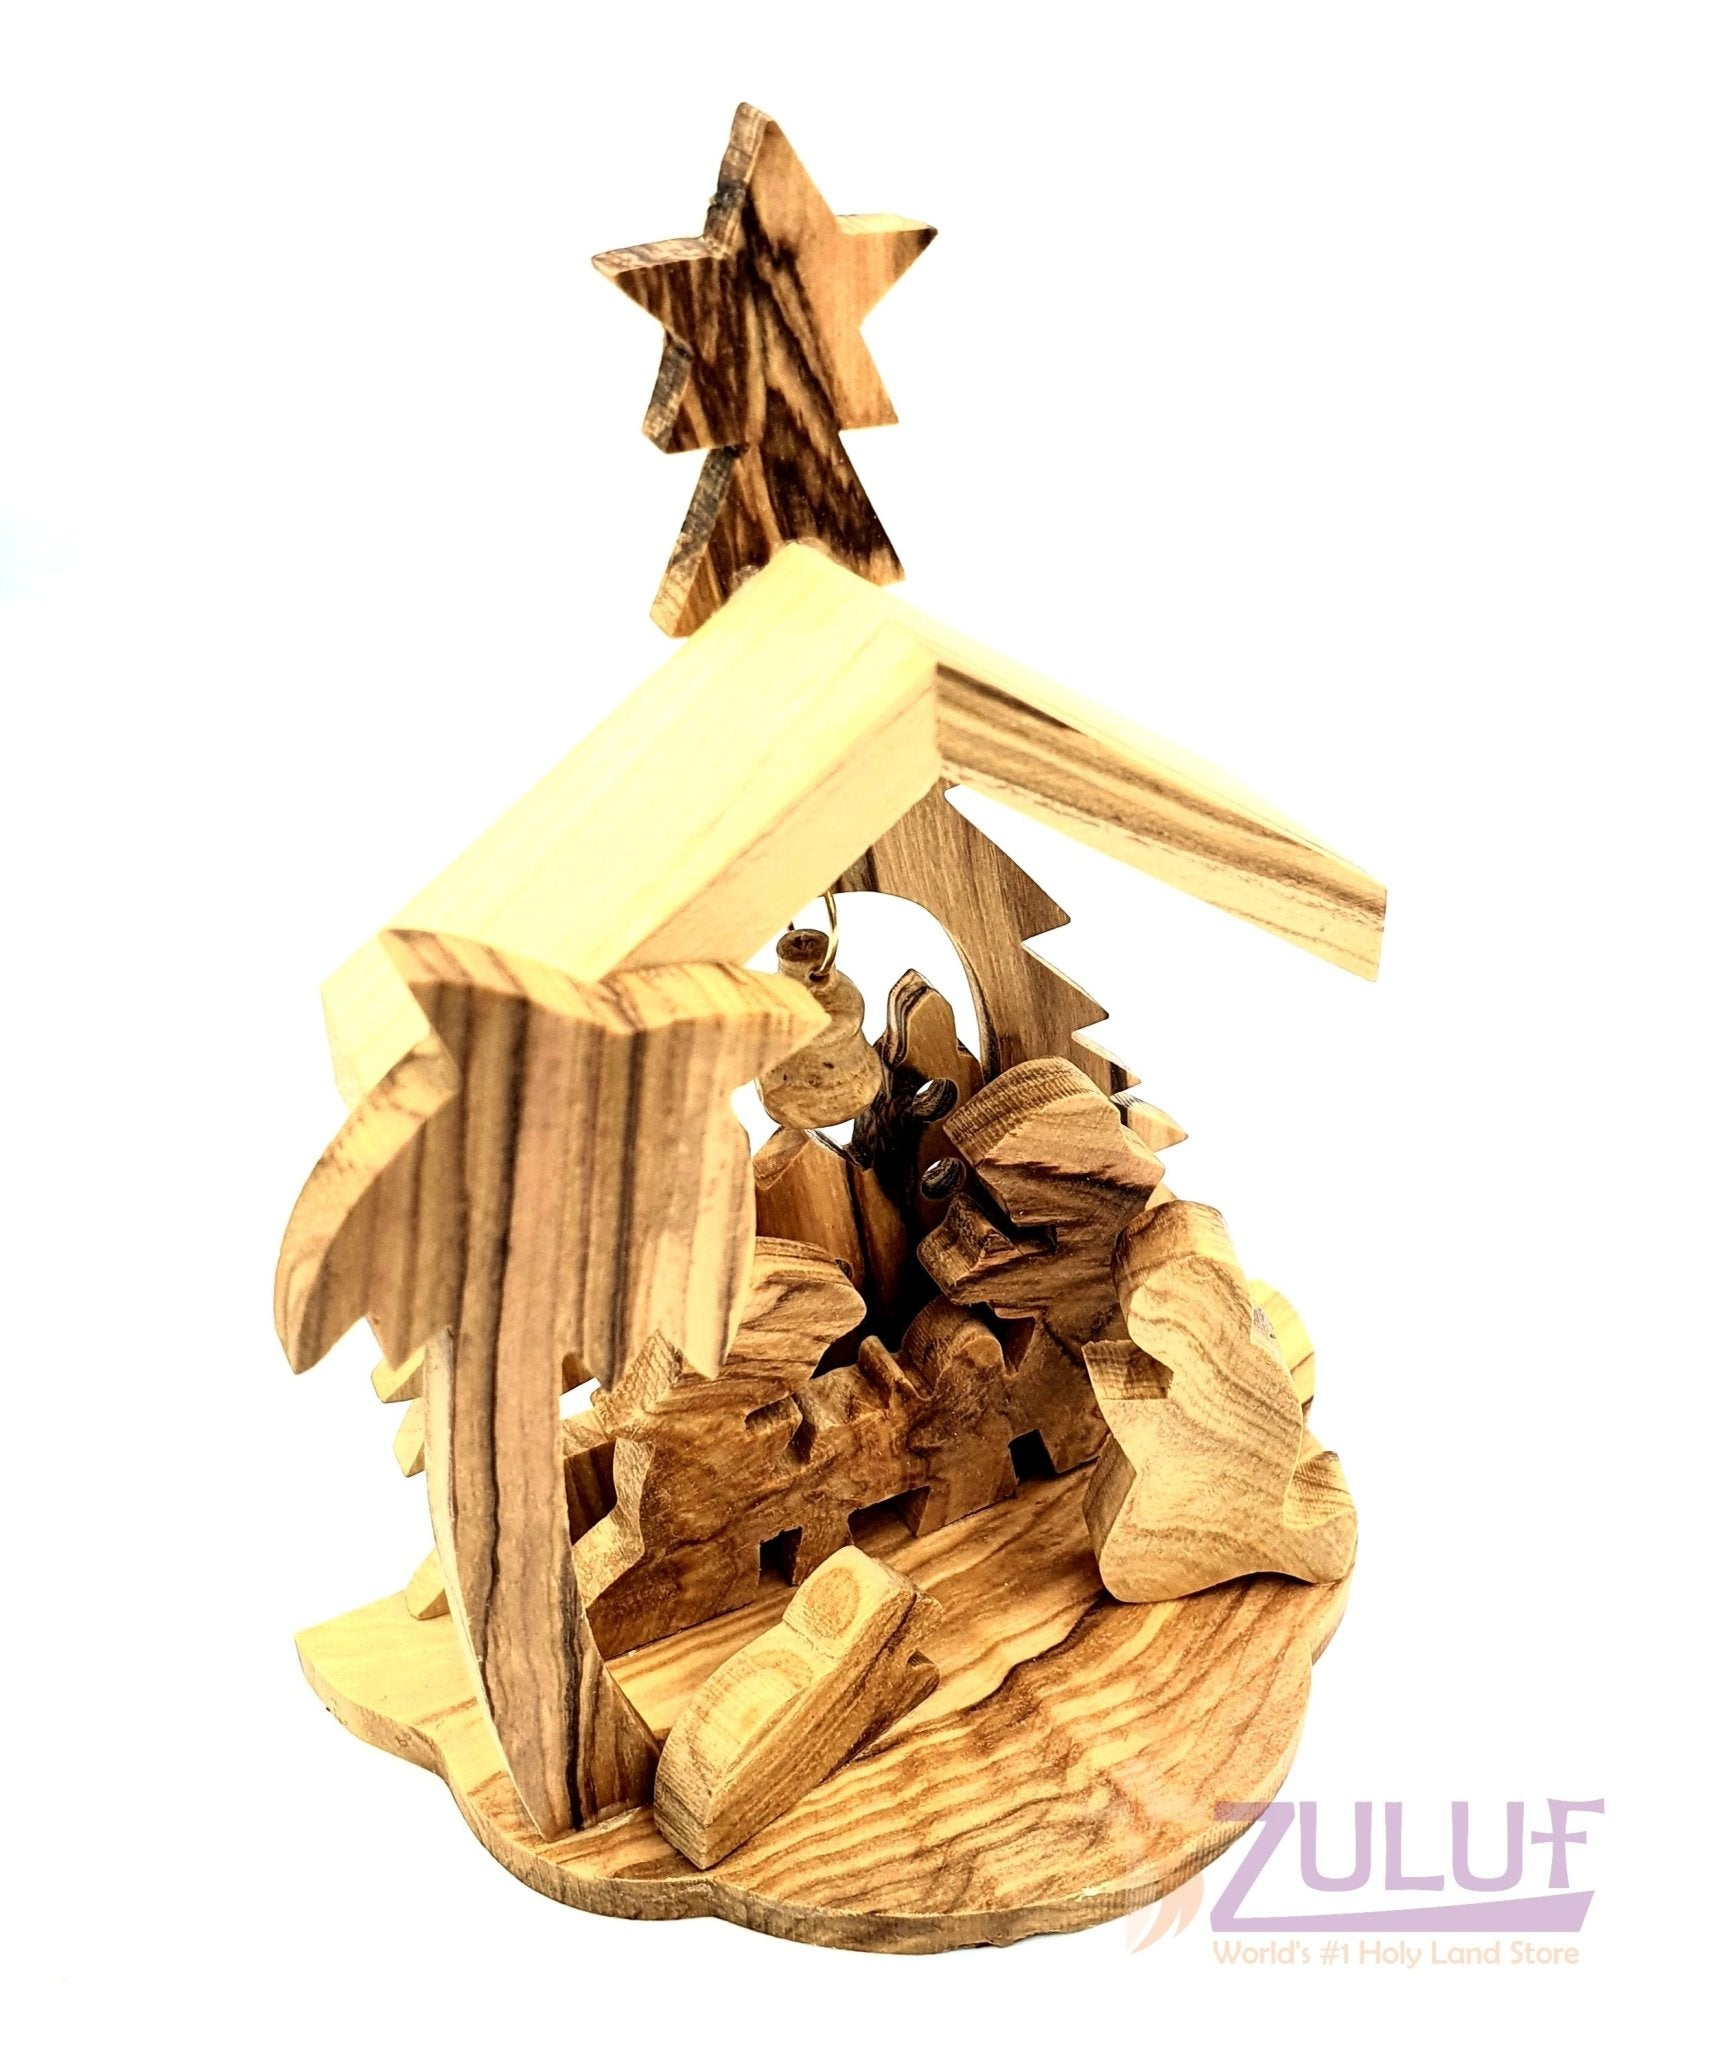 Olive wood hand Made Tree Christmas Gift NAT020 - Zuluf